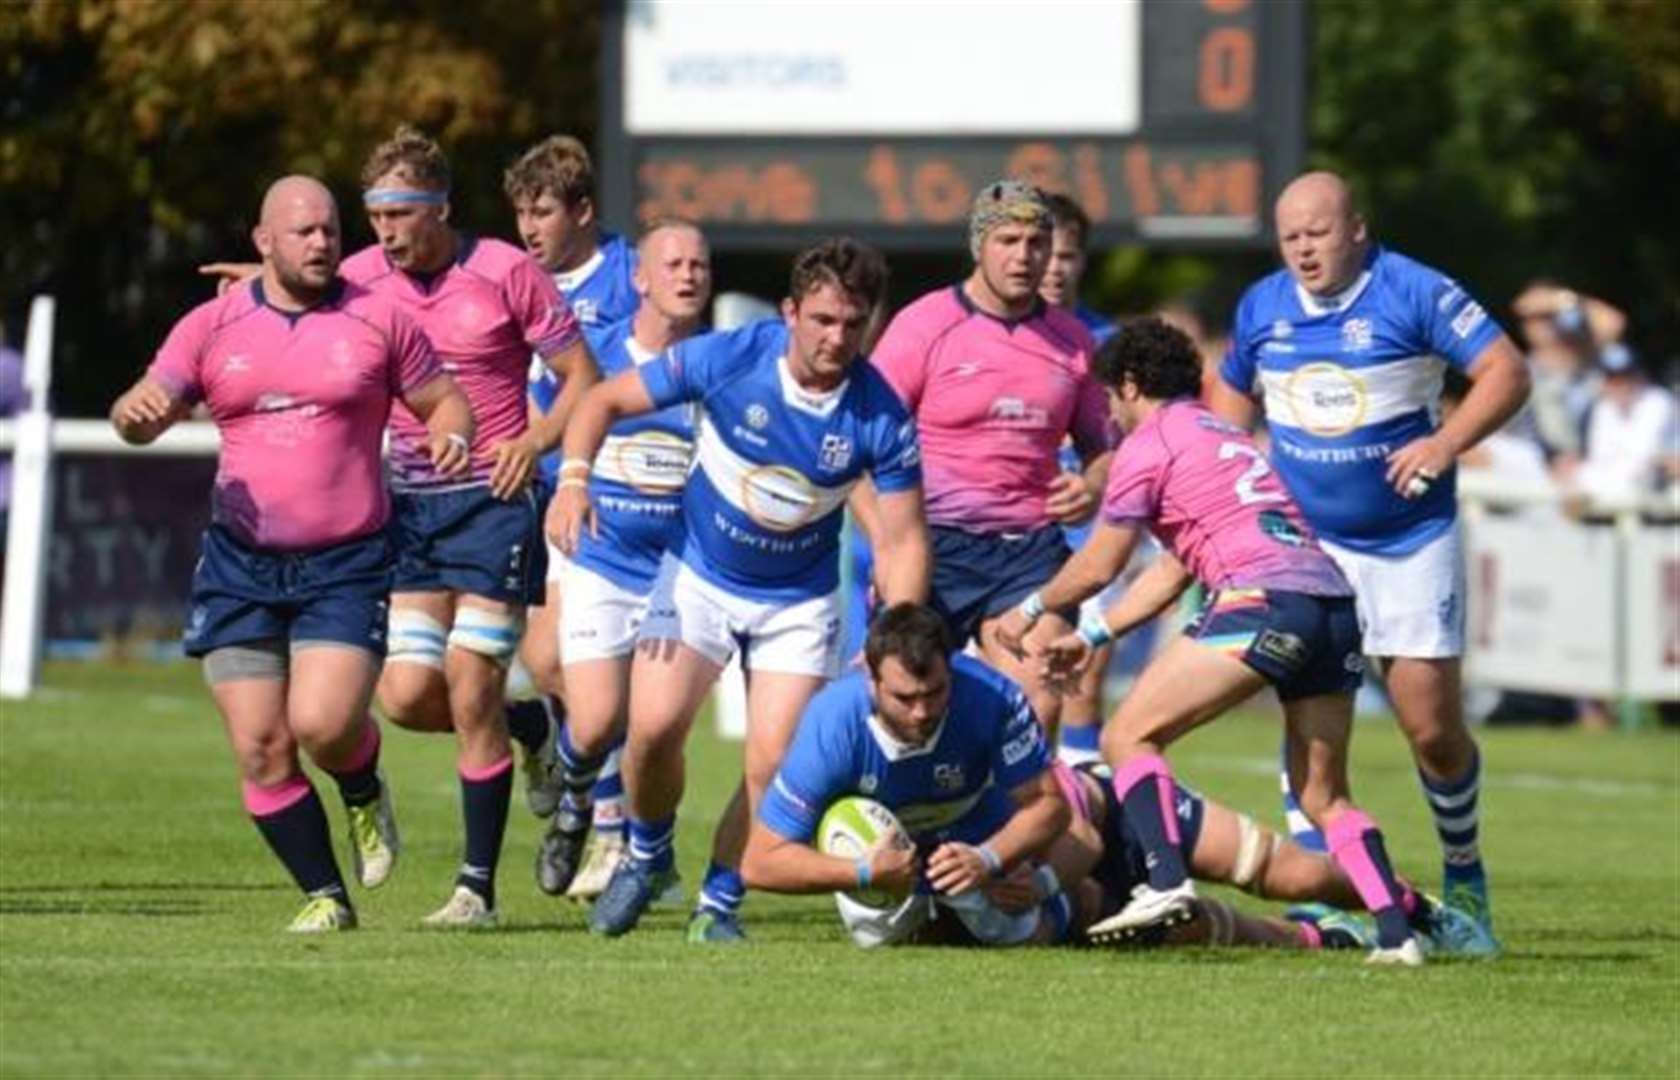 Bishop's Stortford are edged out by Darlington in National League 1 opener